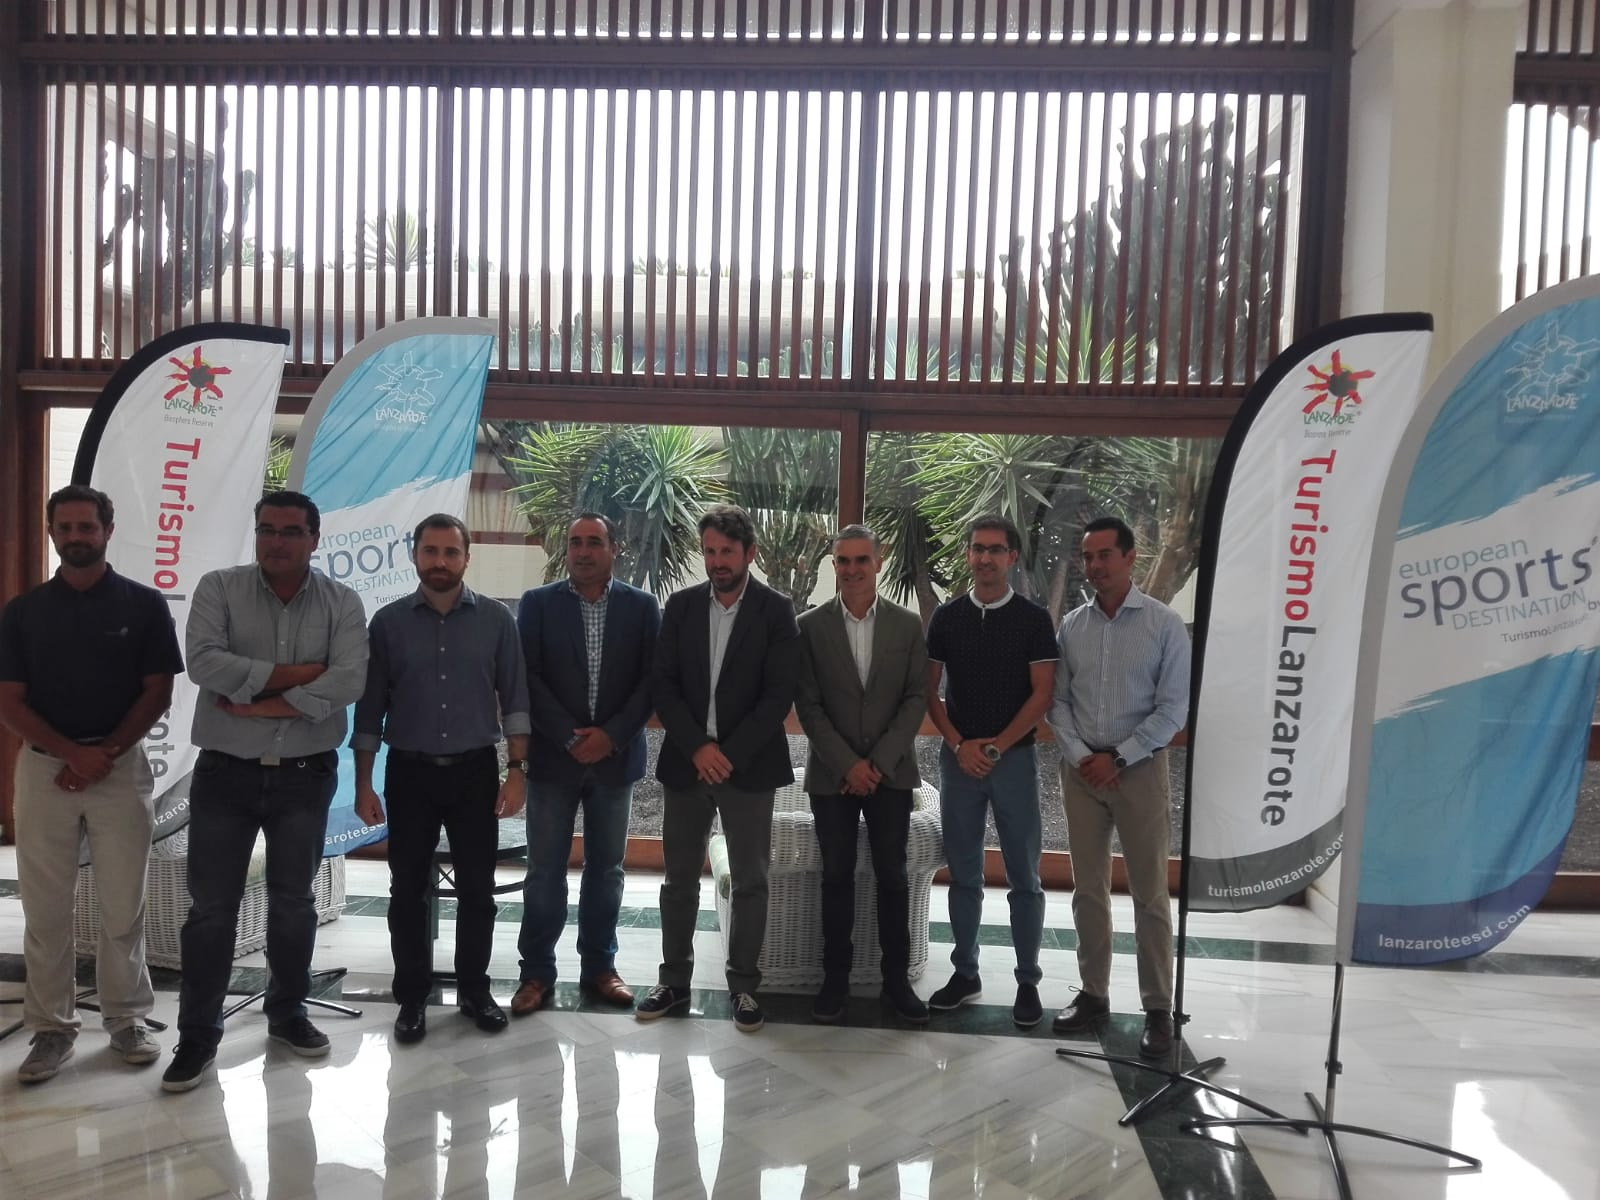 Press Conference for the presentation of the National Final Championship of Gambito Golf